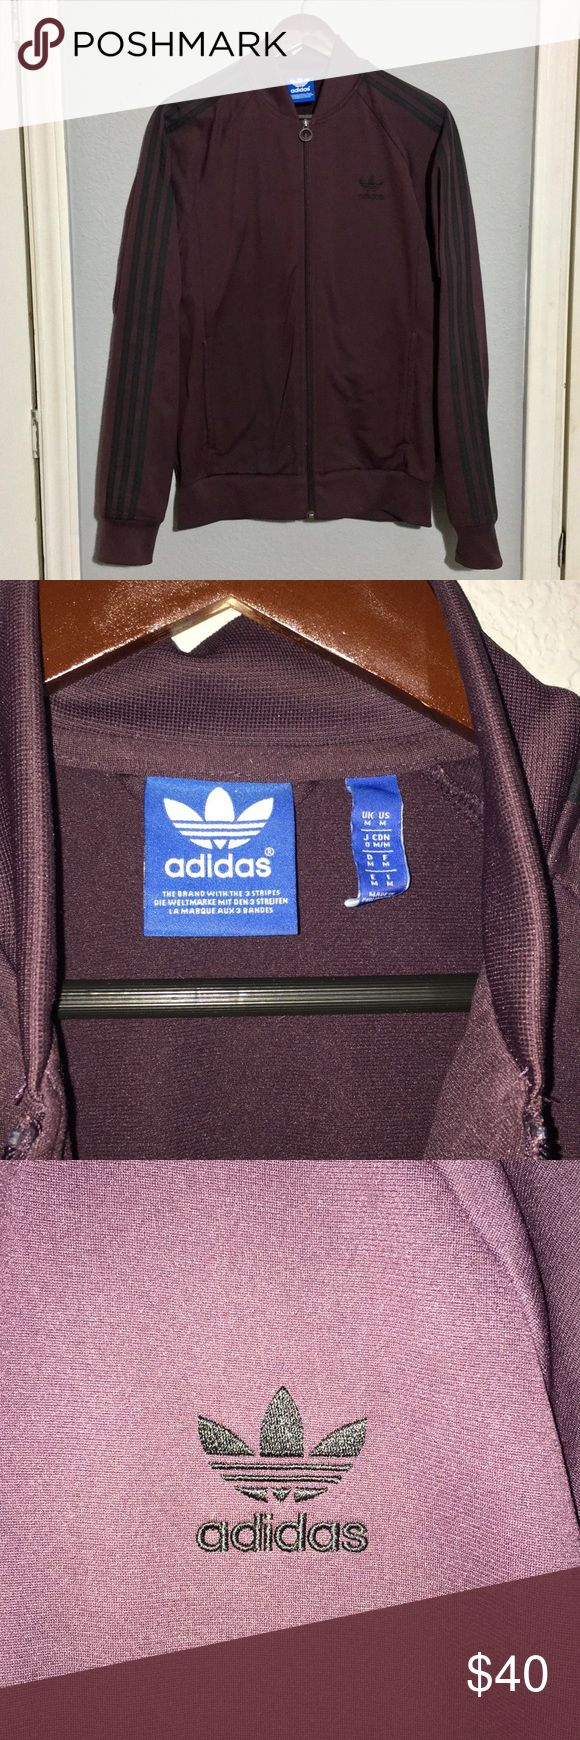 Adidas Superstar Jacket Adidas Superstar Jacket Men's Medium Size  Excellent Condition The color is dark maroon adidas Jackets & Coats Bomber & Varsity